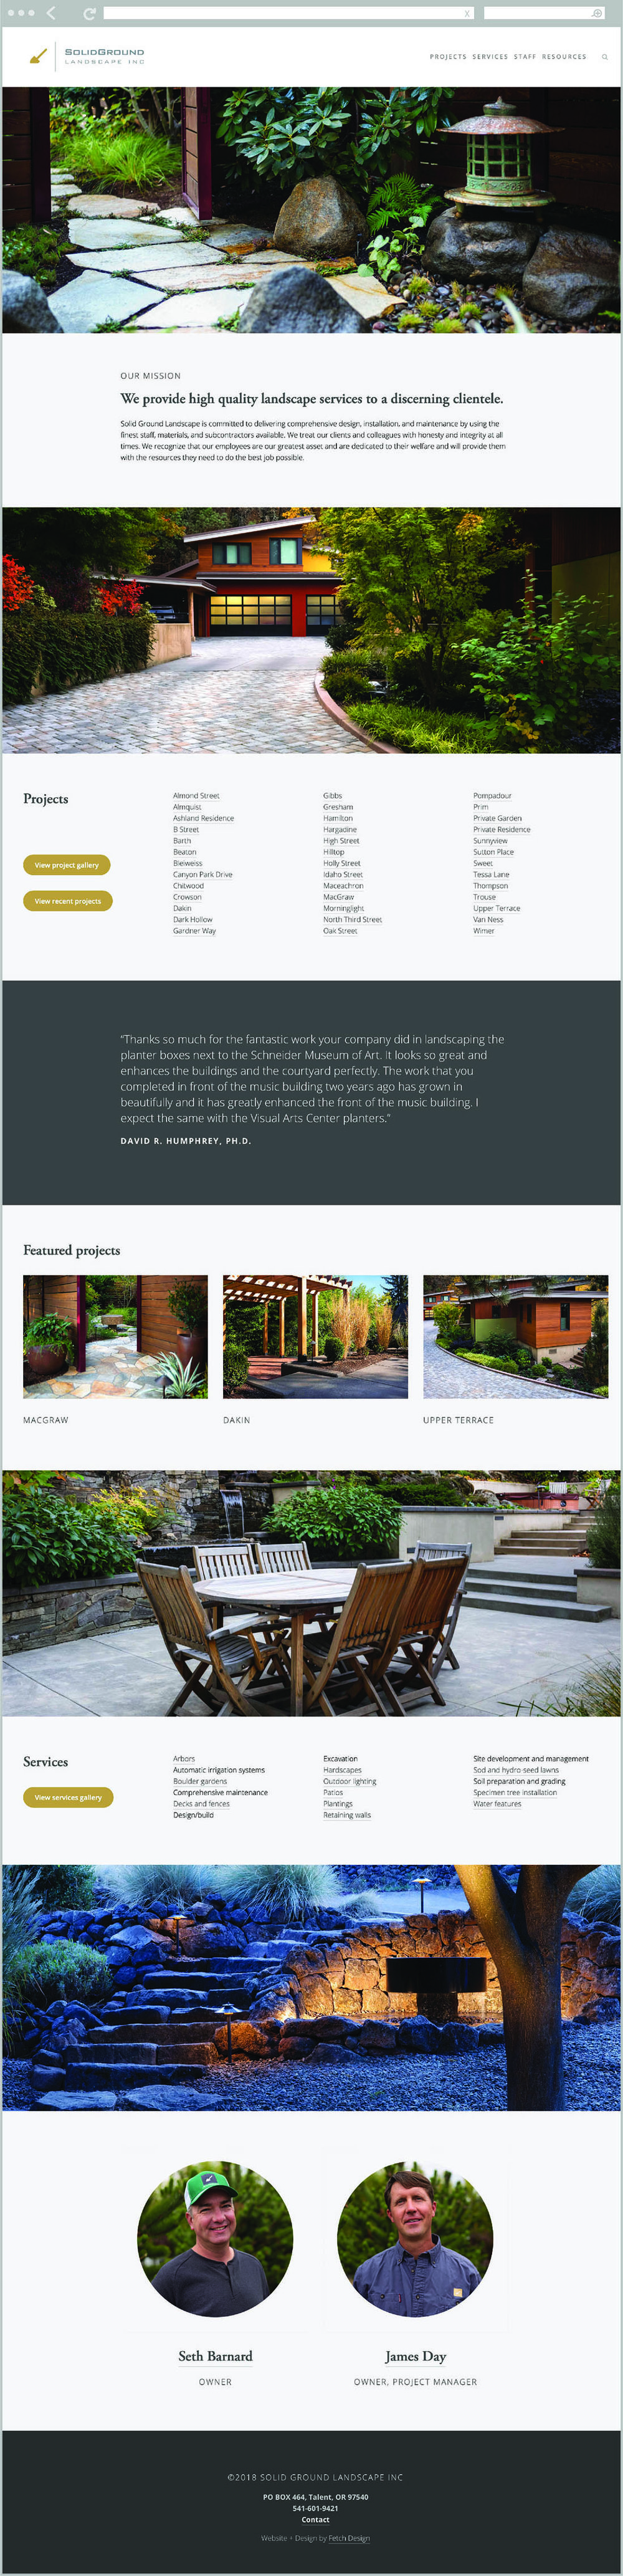 Solid Ground Landscape, Inc. website by Fetch Design. Solid Ground is located in Talent, Oregon and provides landscape design and installation services to the surrounding communities including Jacksonville, Ashland and Medford.